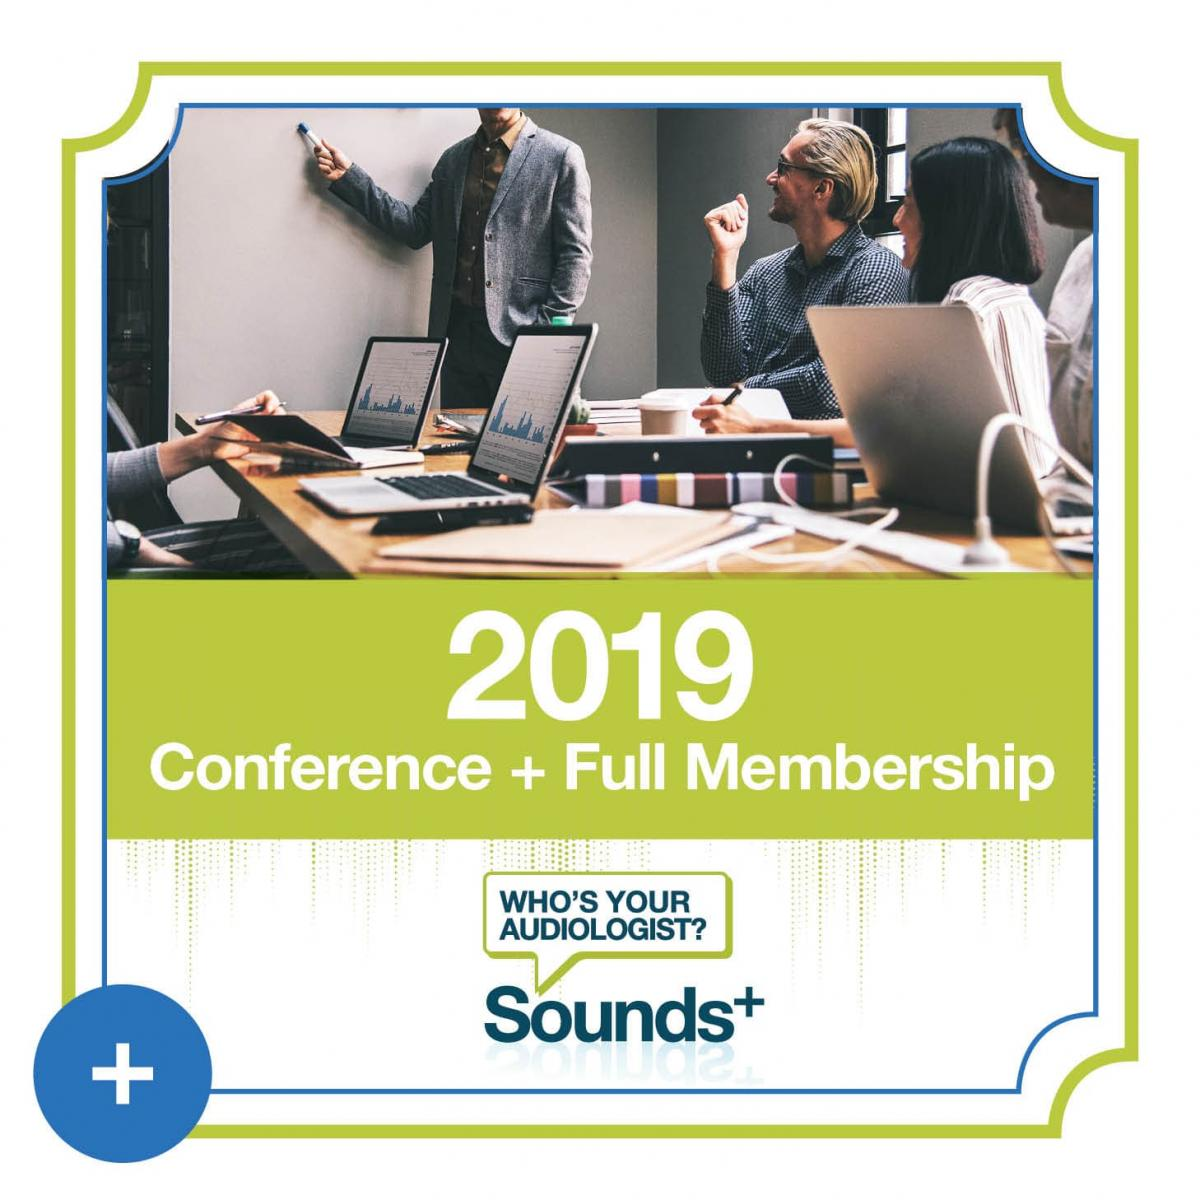 Sounds+ Full Membership and Conference Registration